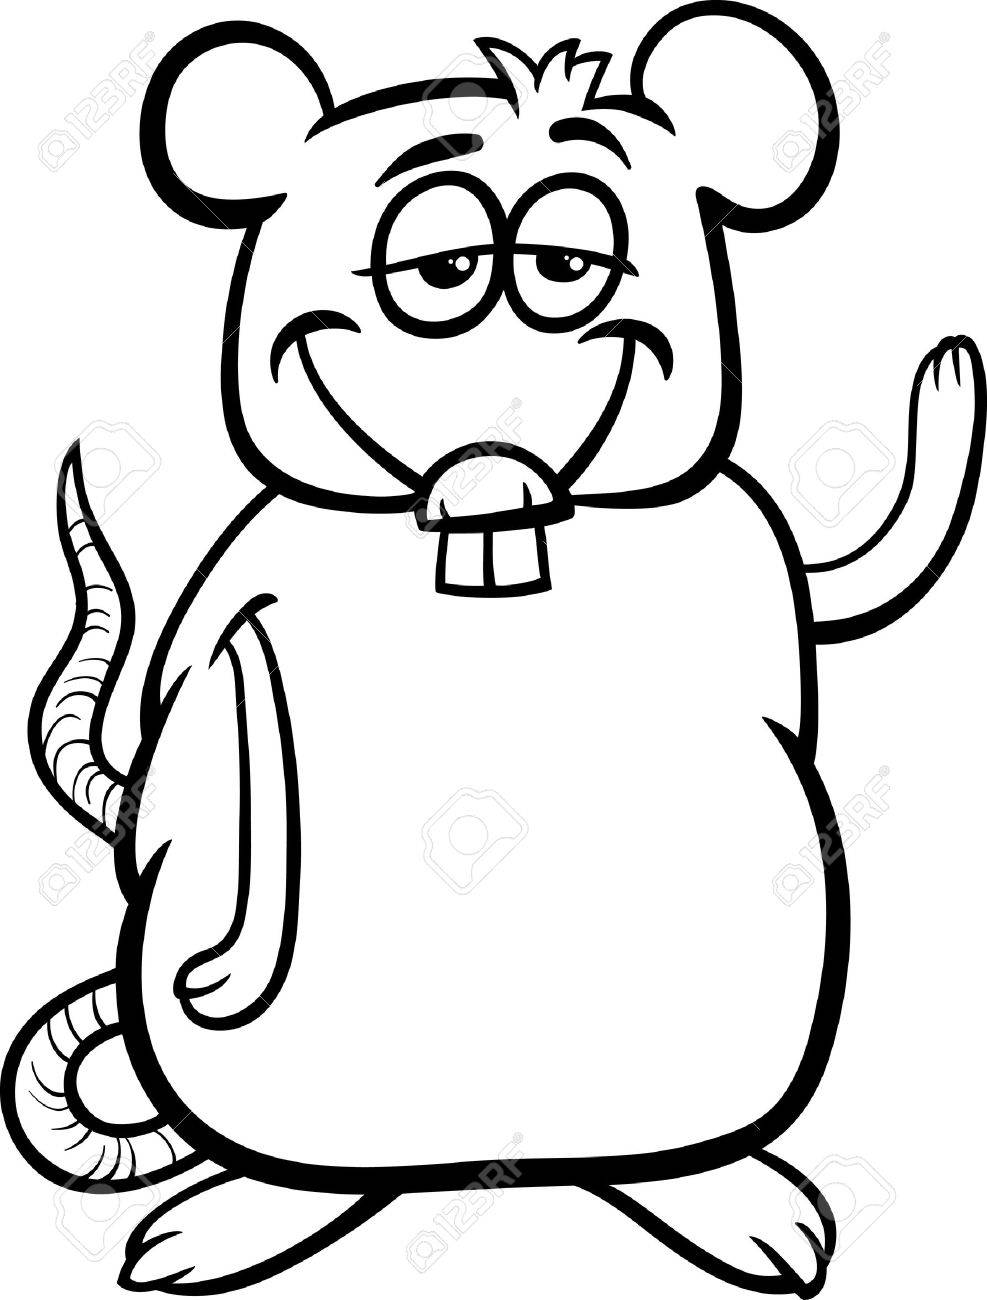 Black And White Cartoon Illustration Of Funny Rat Character For Coloring  Book Stock Vector  27355470